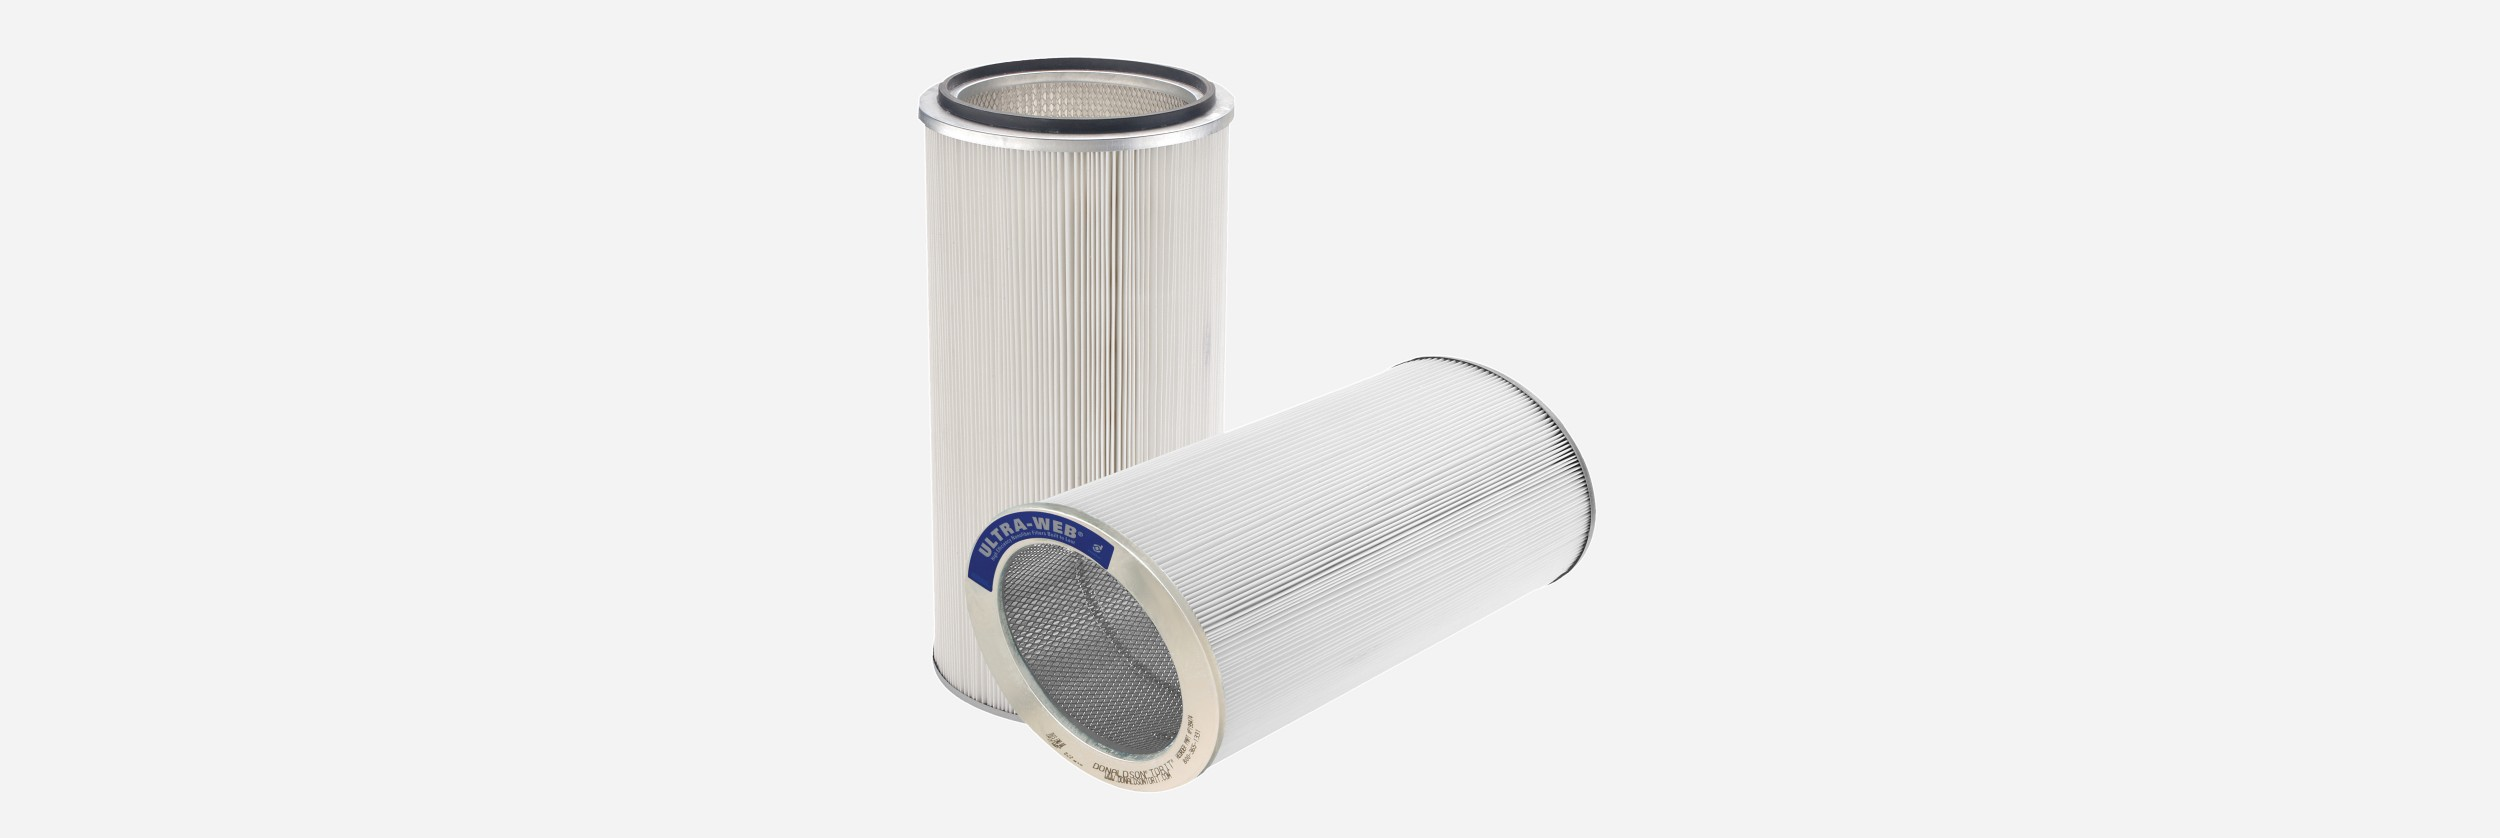 Donaldson Ultra-Web SB (spunbond) dust collector filters - hero image | AIRPLUS Industrial